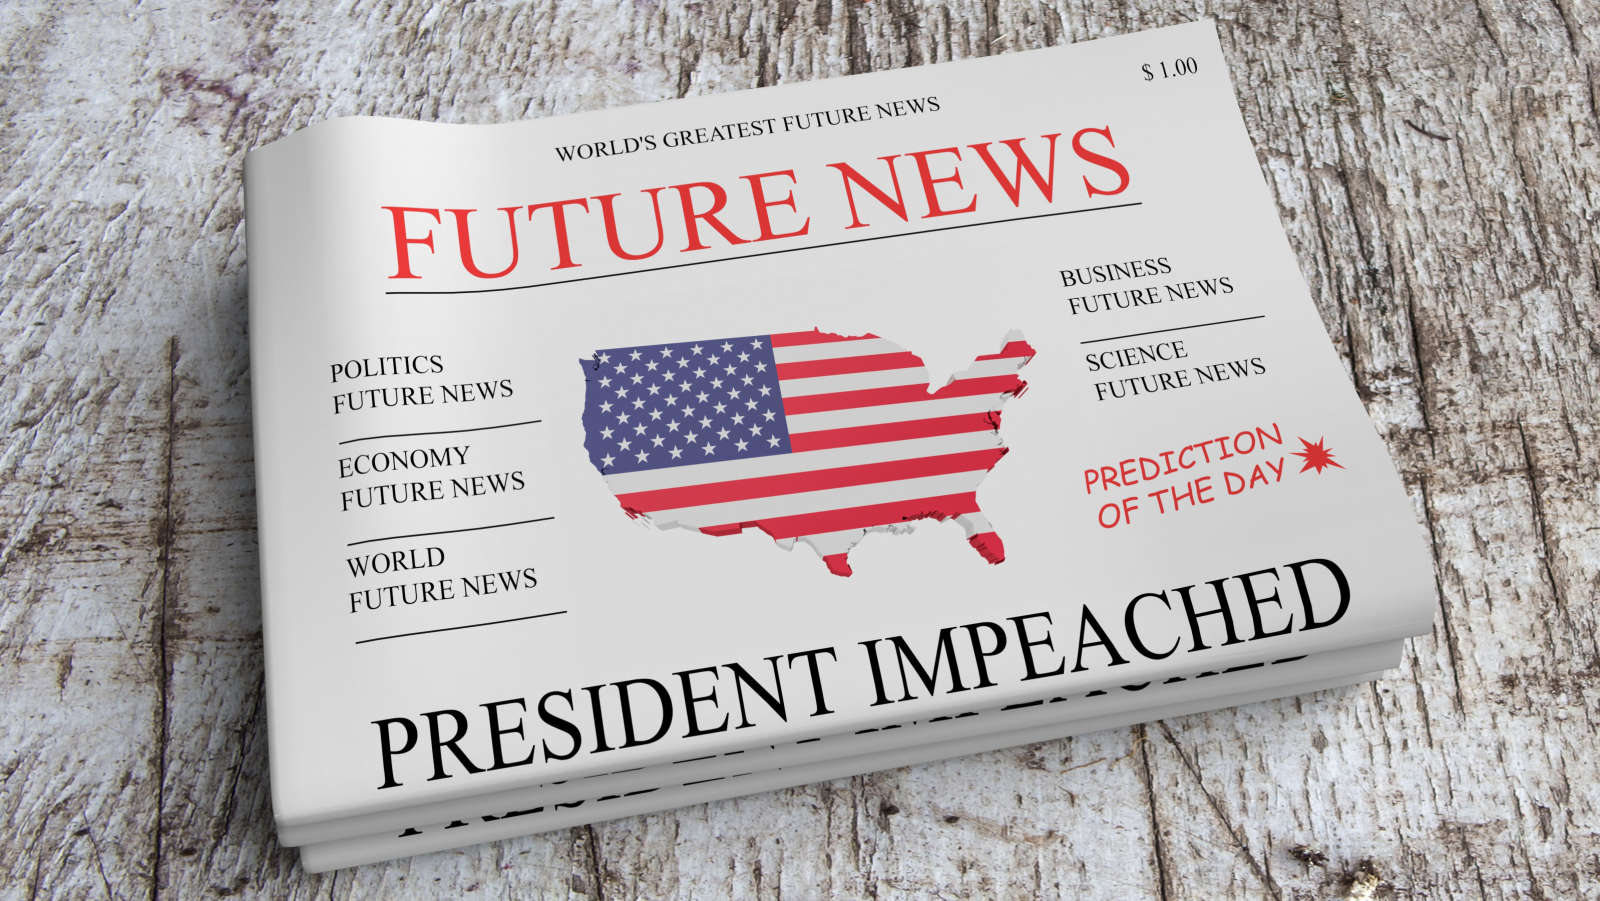 Stay Updated on the Latest Impeachment News With This Site